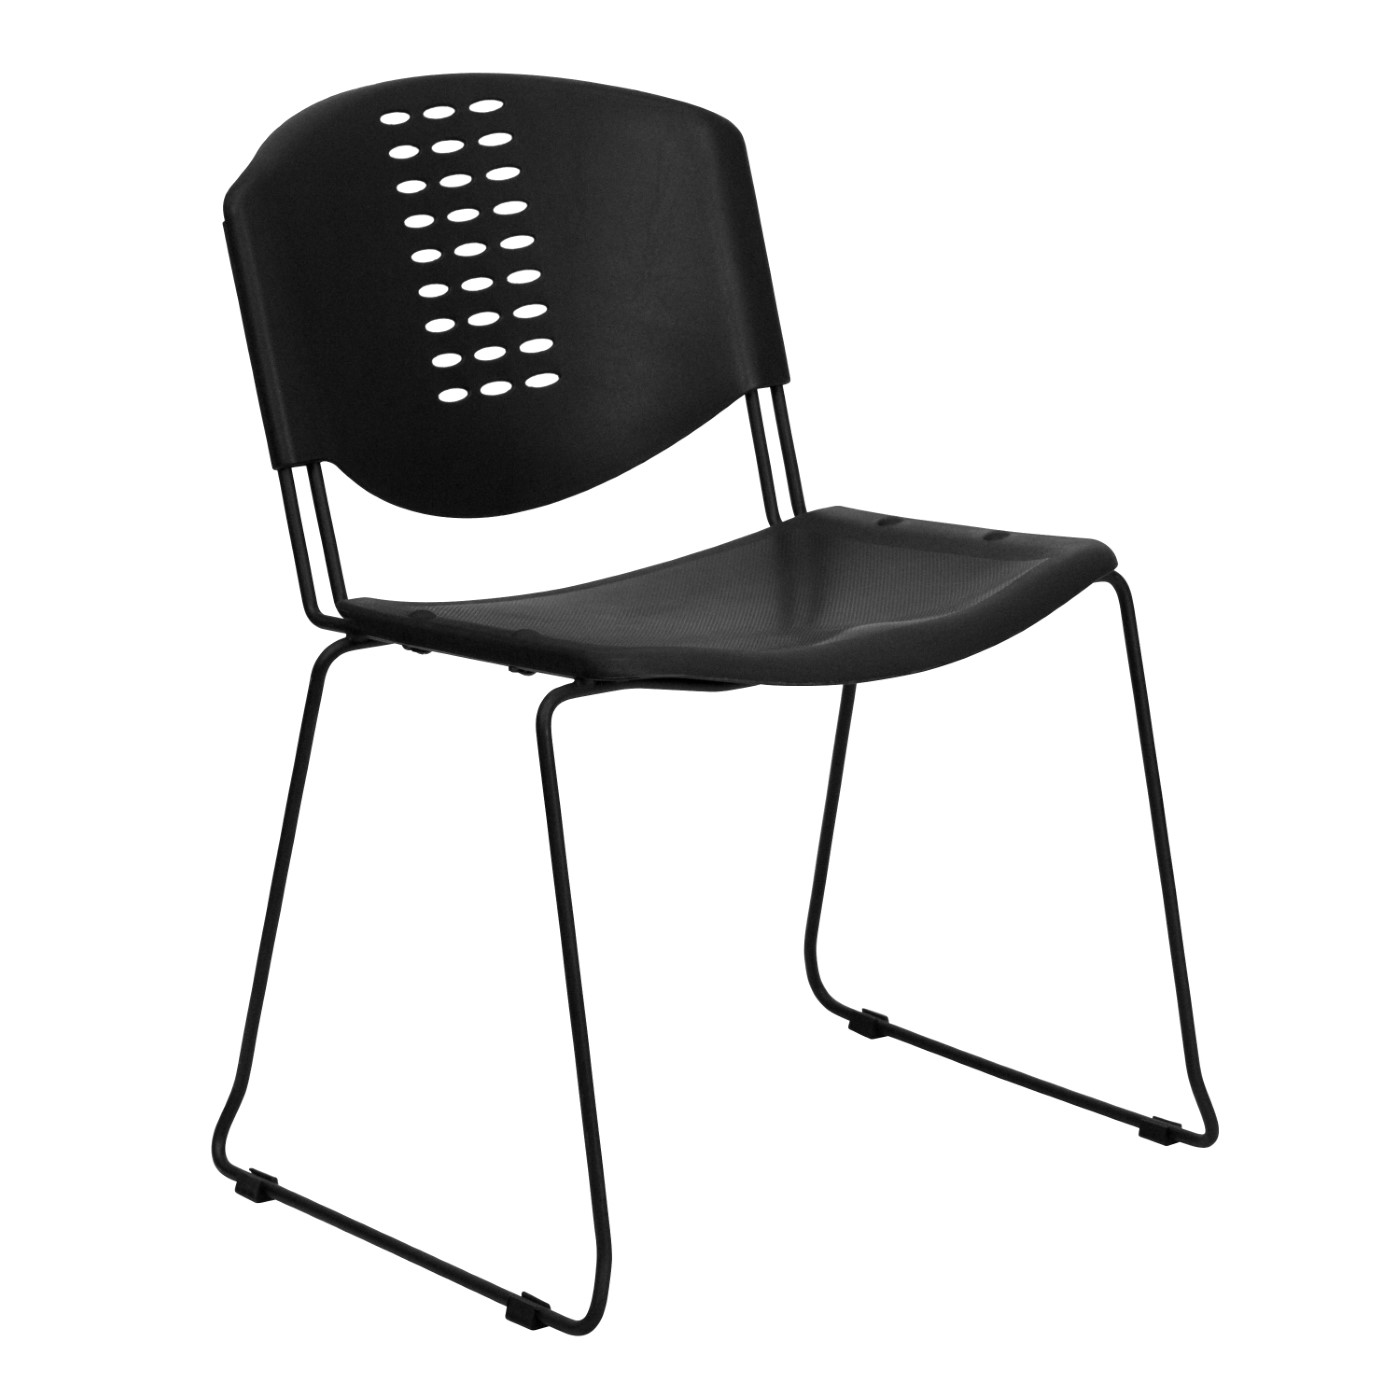 TOUGH ENOUGH Series 400 lb. Capacity Black Plastic Stack Chair with Black Frame